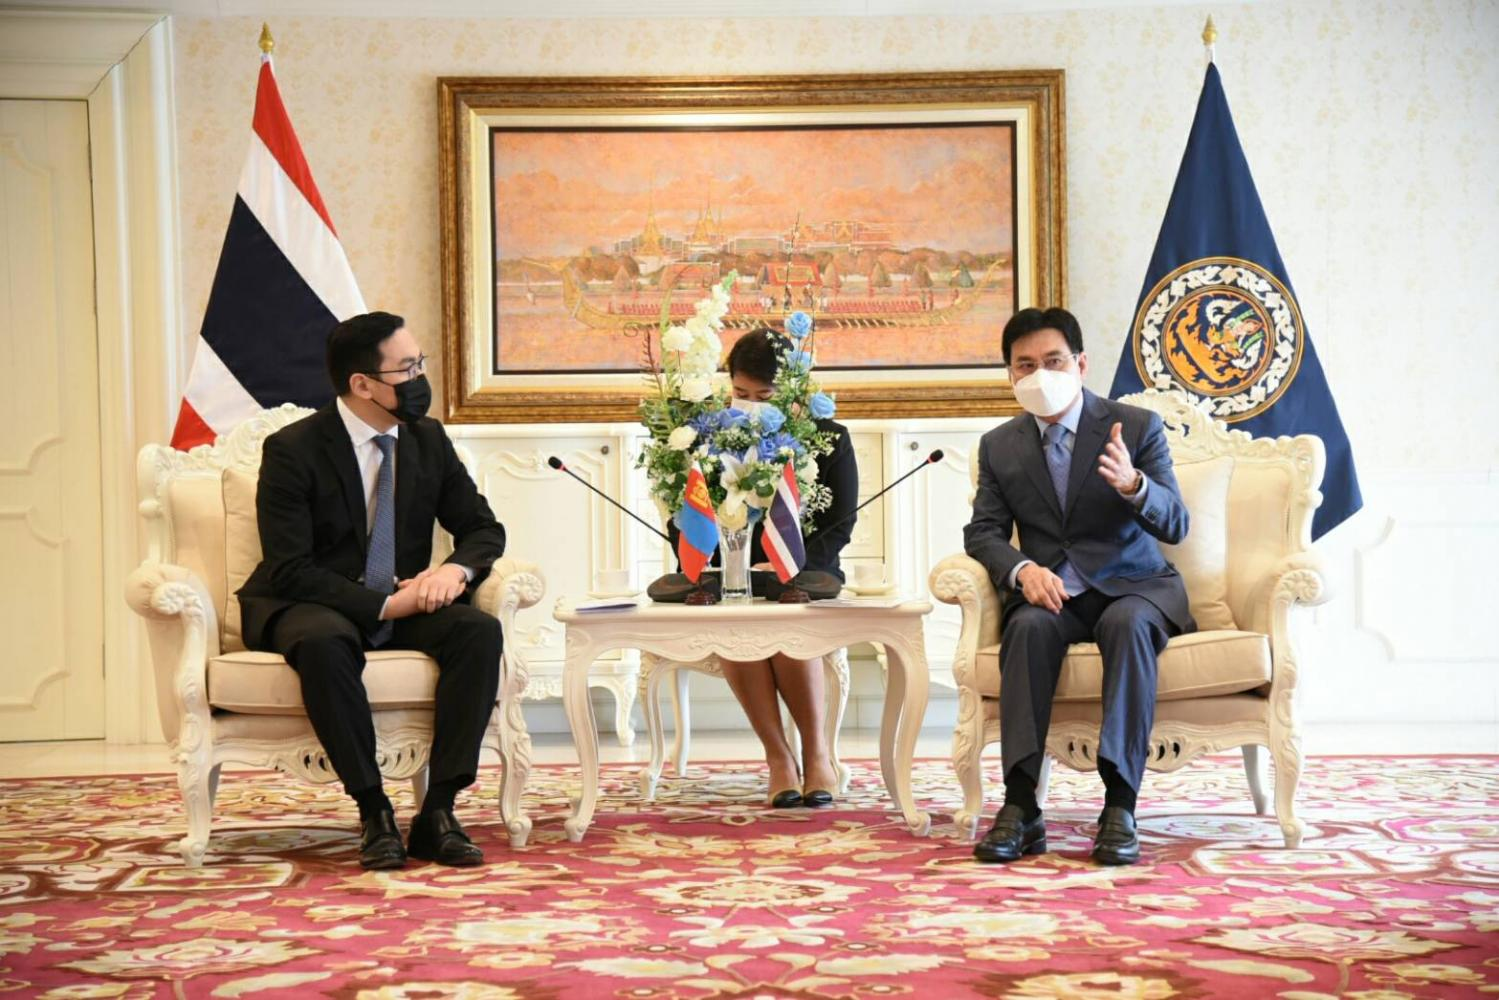 Mr Tumur Amarsanaa, the Mongolian ambassador to Thailand, left, paid a courtesy call to Commerce Minister Jurin Laksanawisit to discuss ways to enhance bilateral trade and investment, aiming to achieve a trade target of 3.1 billion baht by 2023.